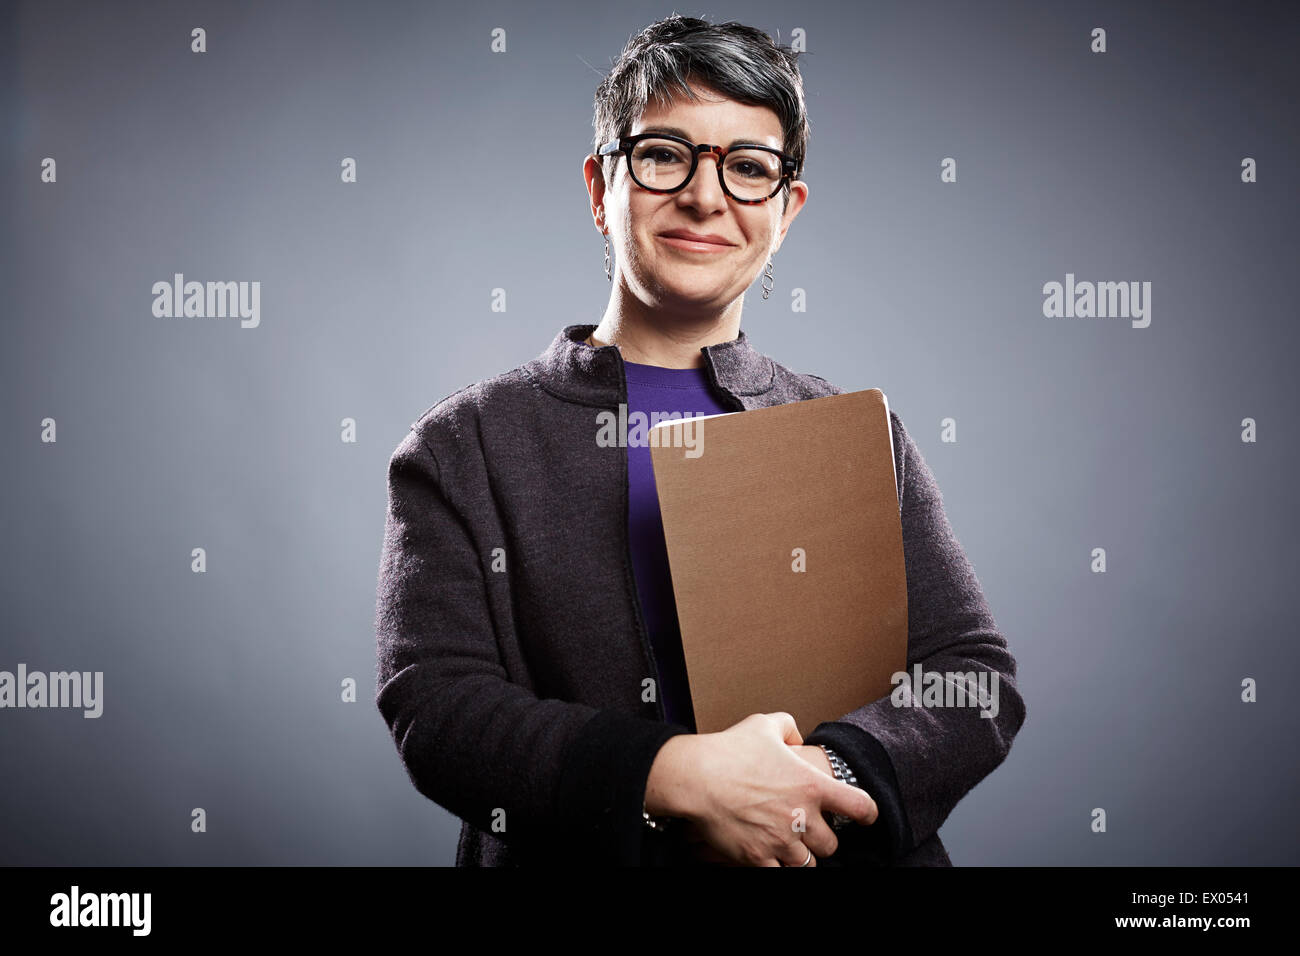 Studio portrait of mature businesswoman with clipboard Photo Stock